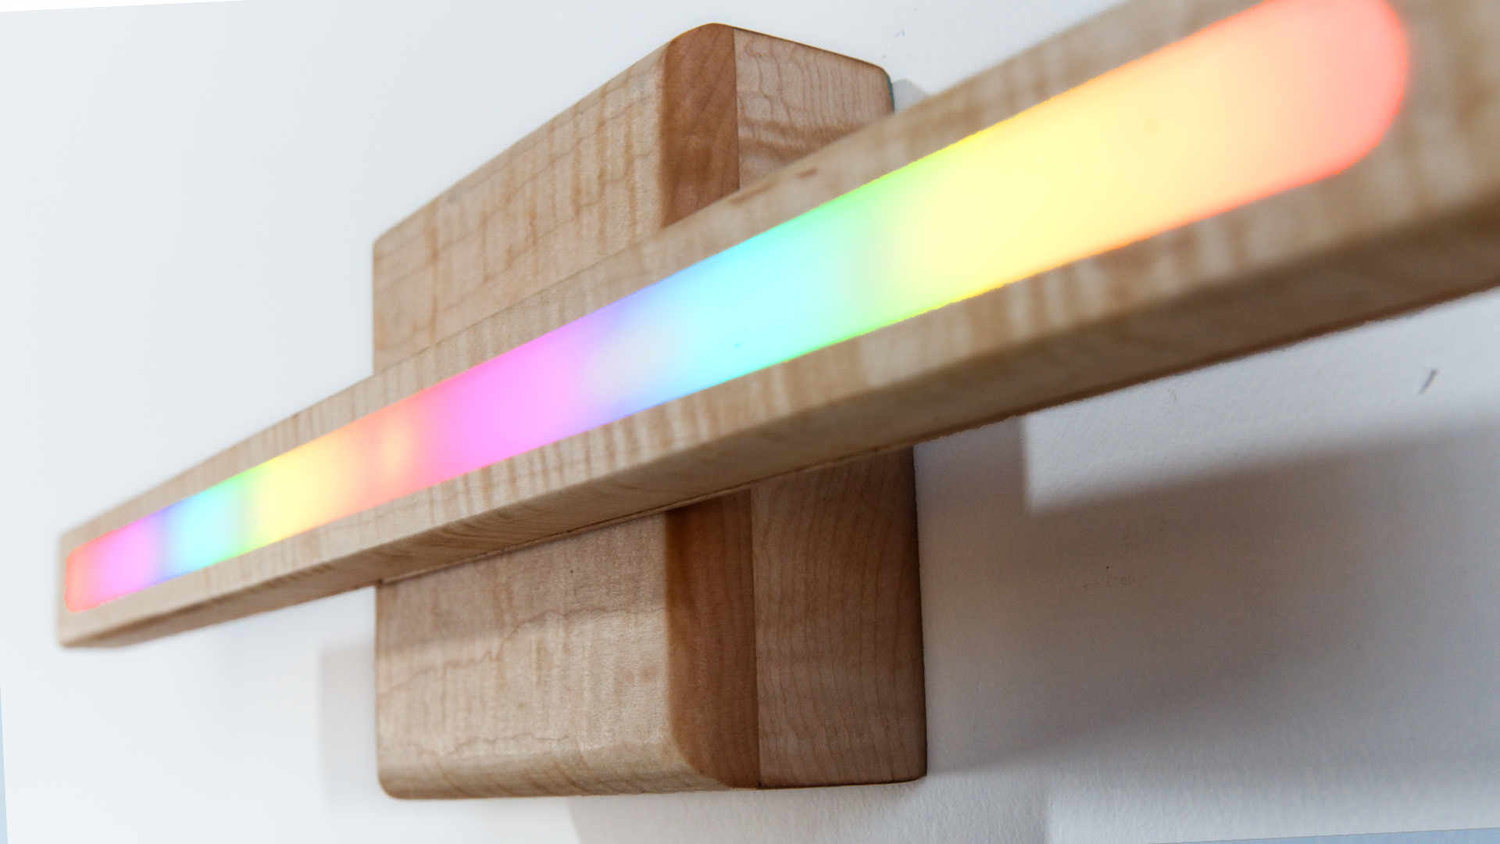 I made a wireless 3-in-1 RAINBOW RESIN lamp -- TRANSFORMS